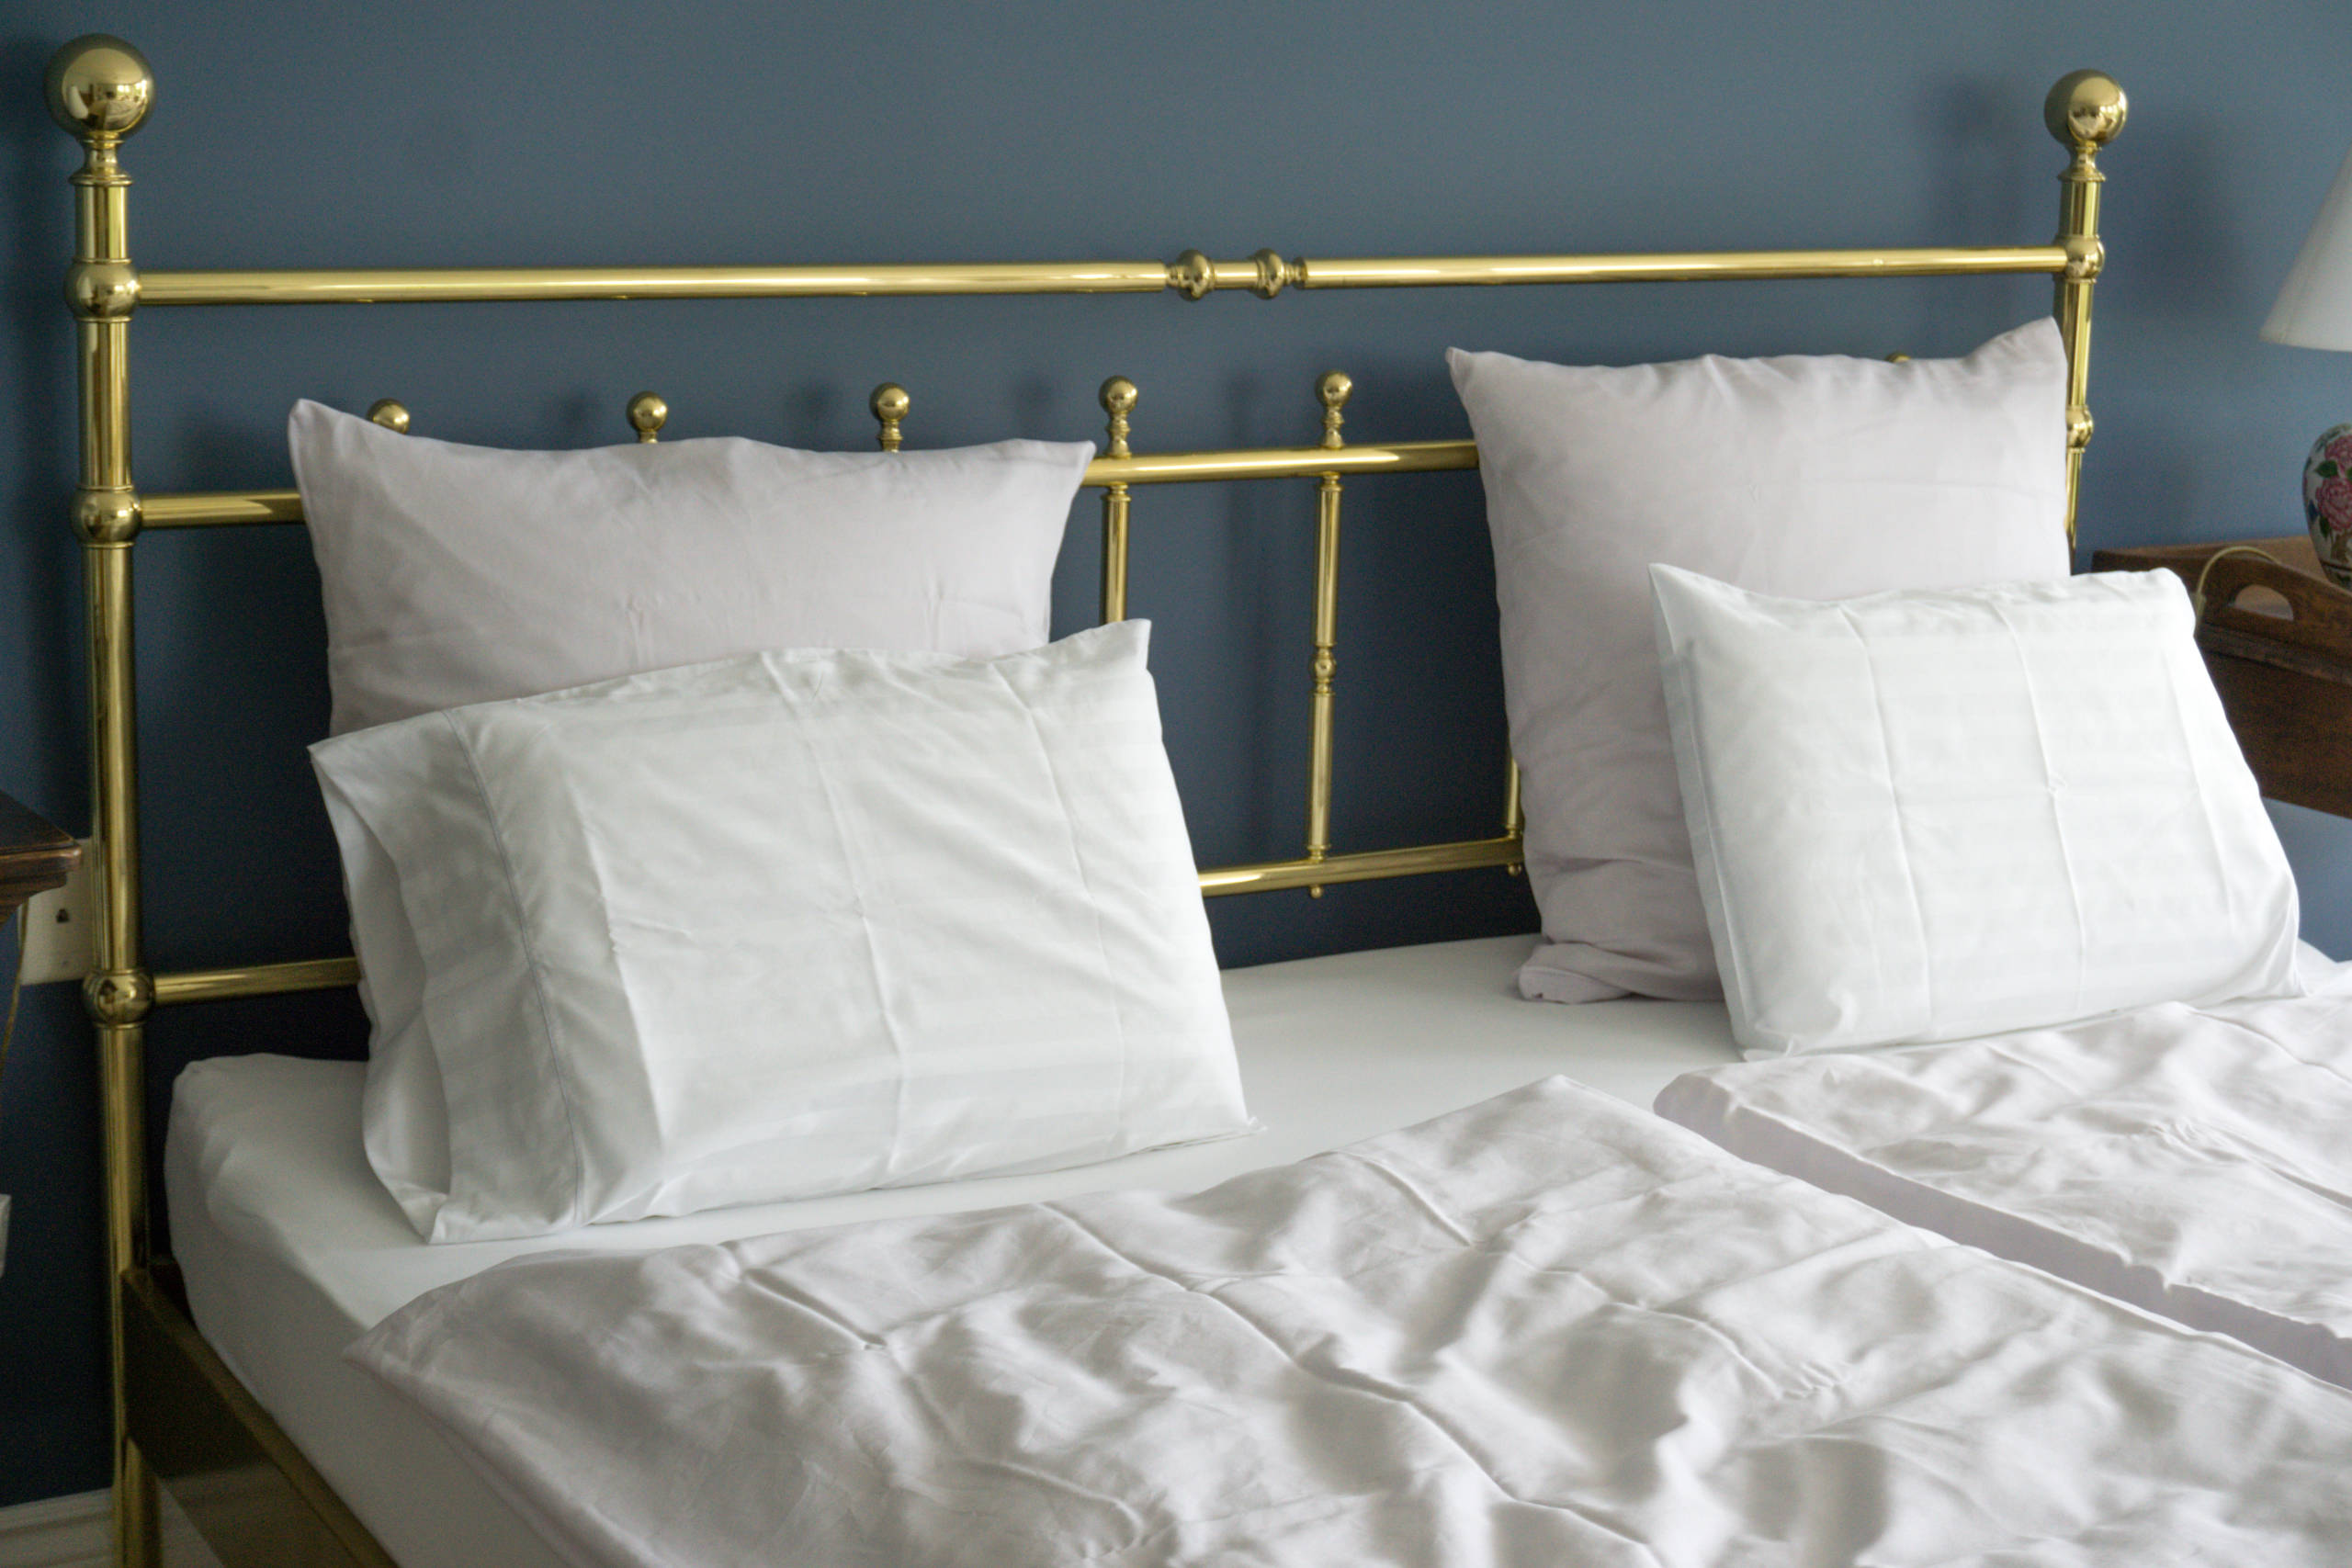 Brass headboard of the bed in The Bay View Suite at The Empty Nest in Prince Edward County